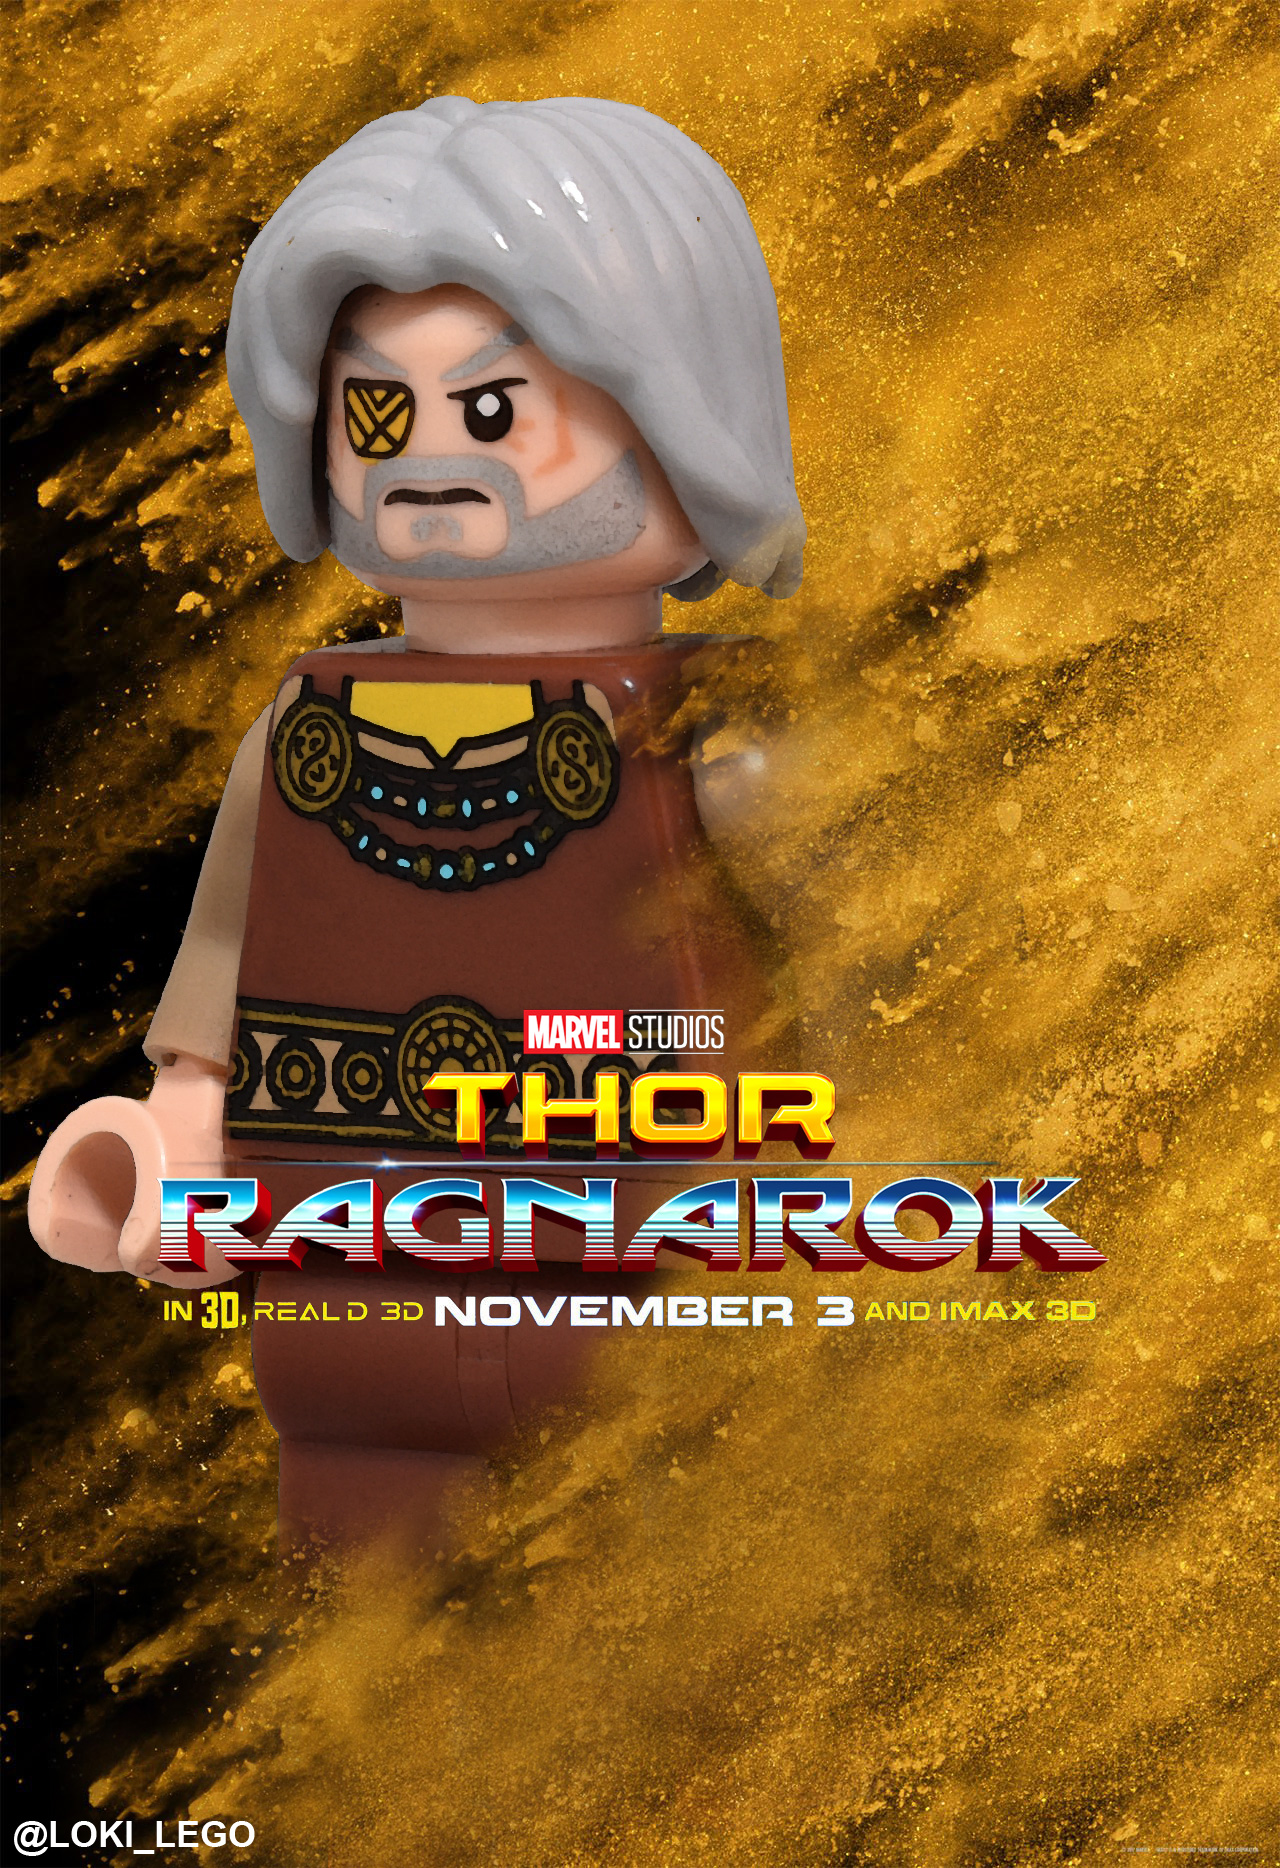 eight thor ragnarok character posters recreated in lego